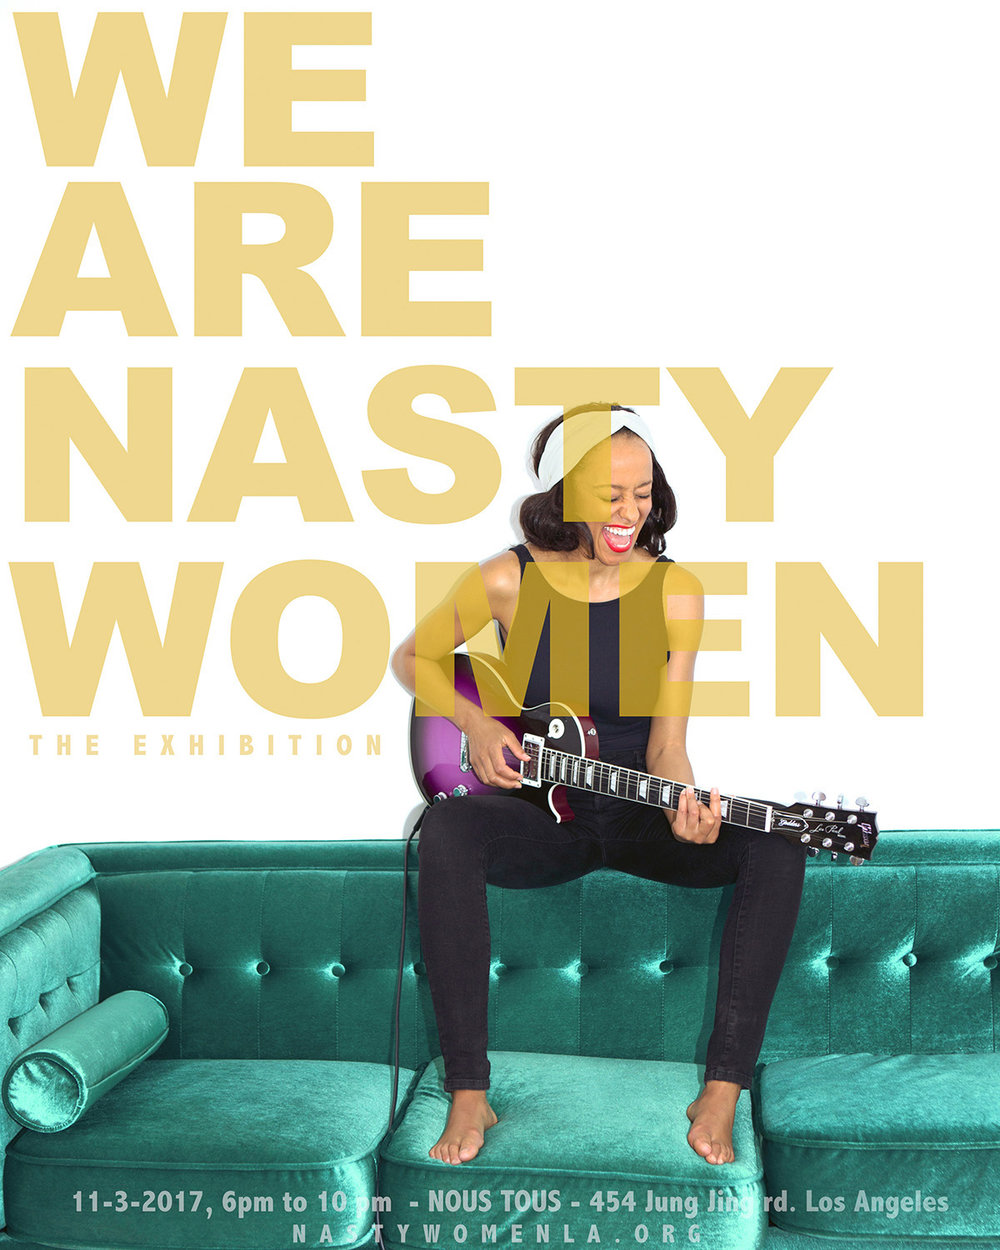 Iliona Blanc from the  We are Nasty Women  campaign. Courtesy of the artist.